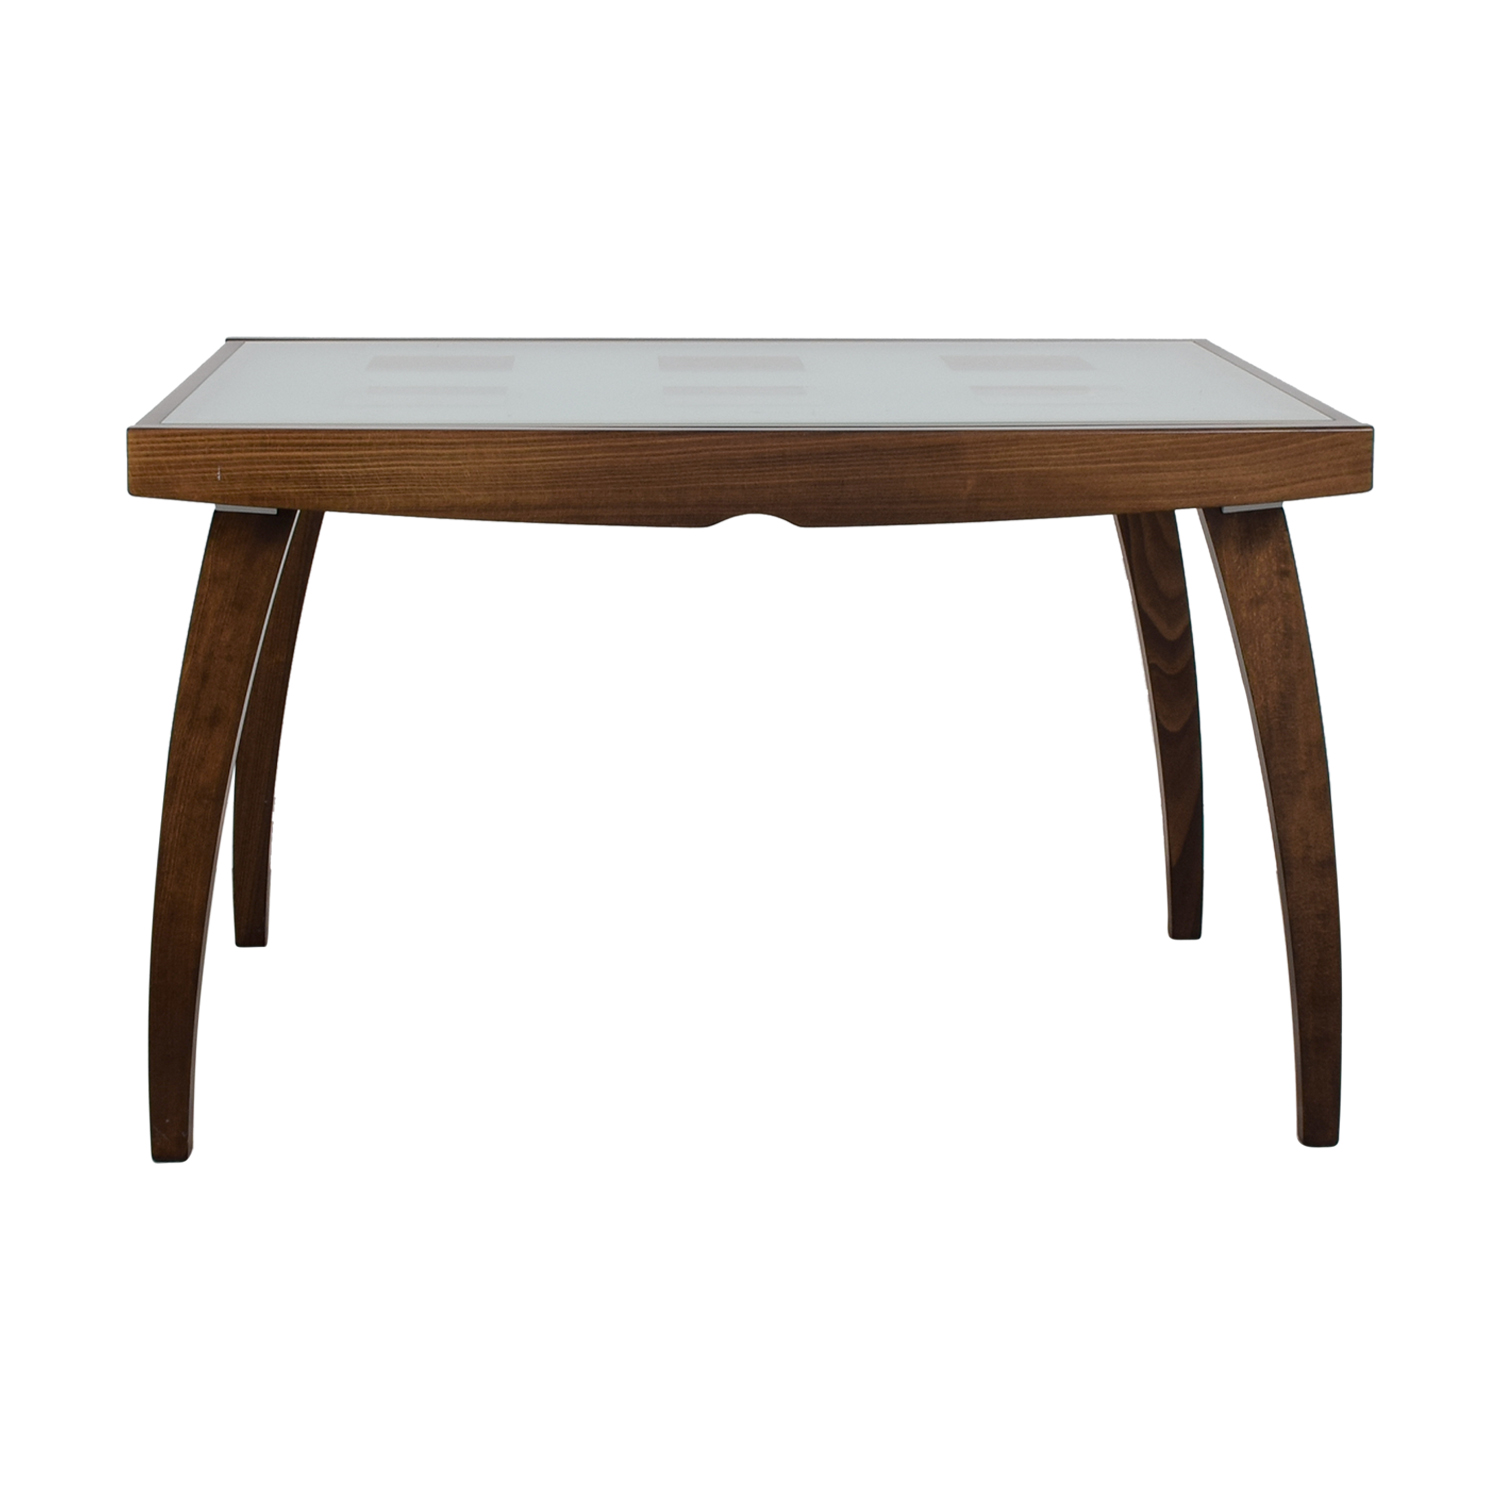 Calligaris Calligaris Two-Toned Frosted Glass Expandable Dining Table for sale